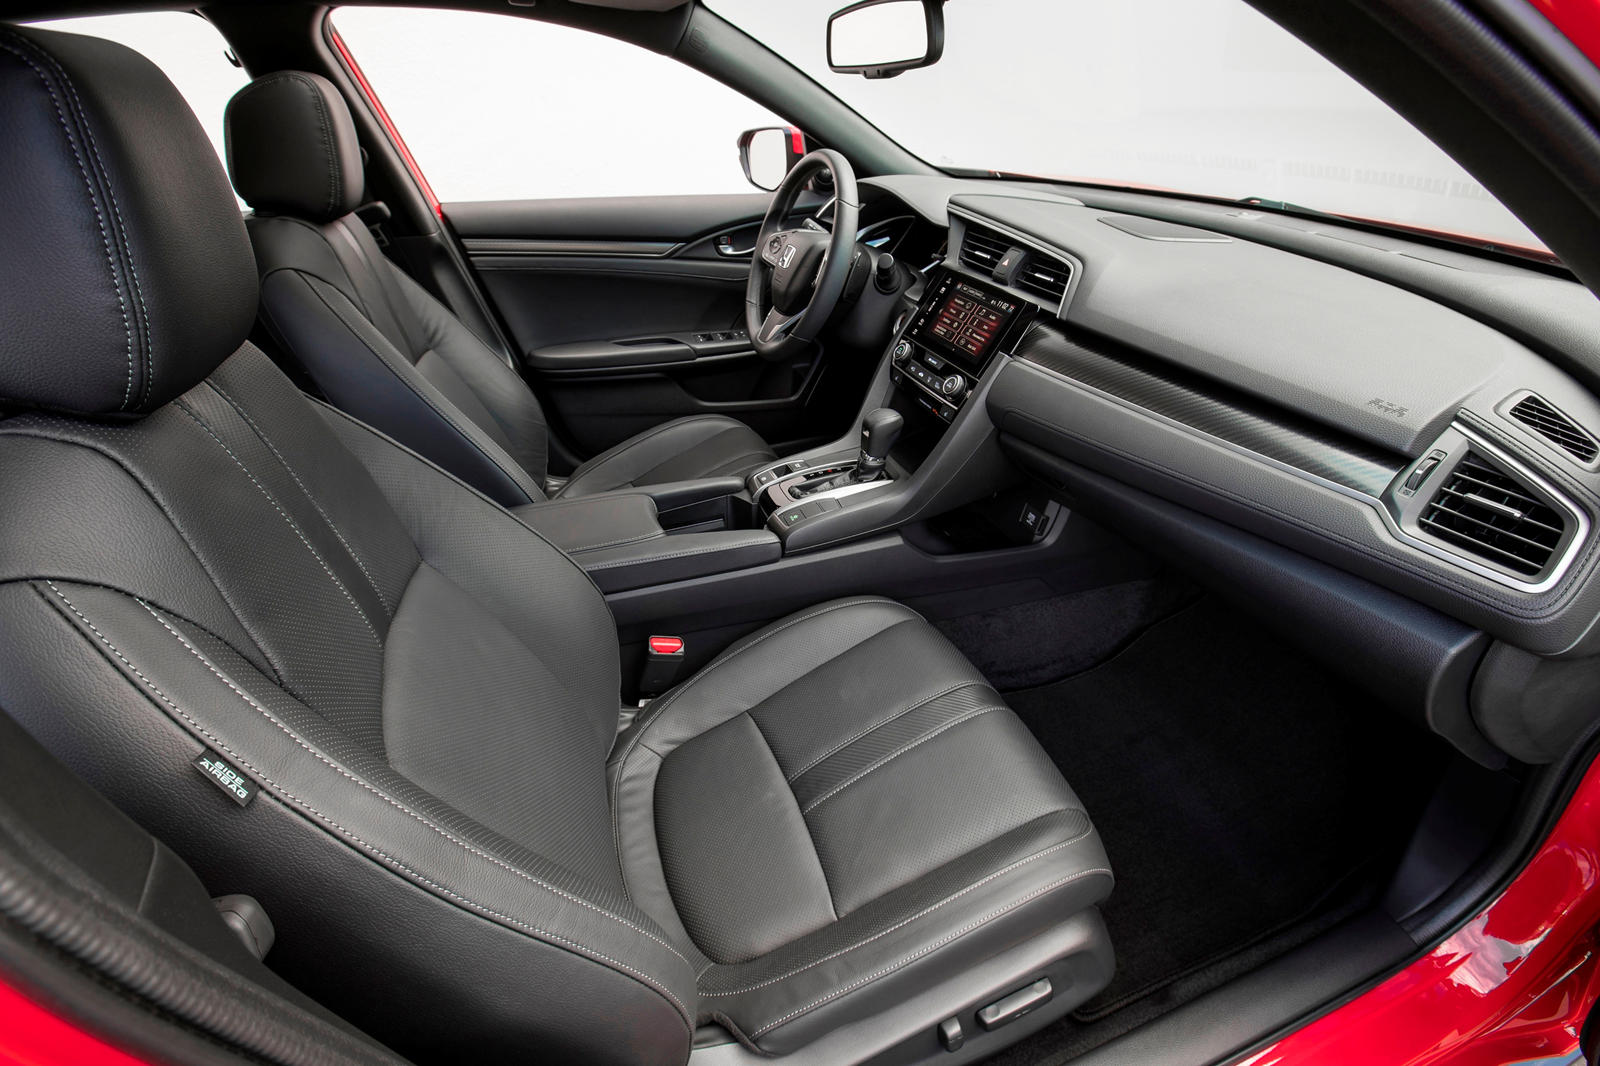 2020 Honda Civic Hatchback Interior Front seat